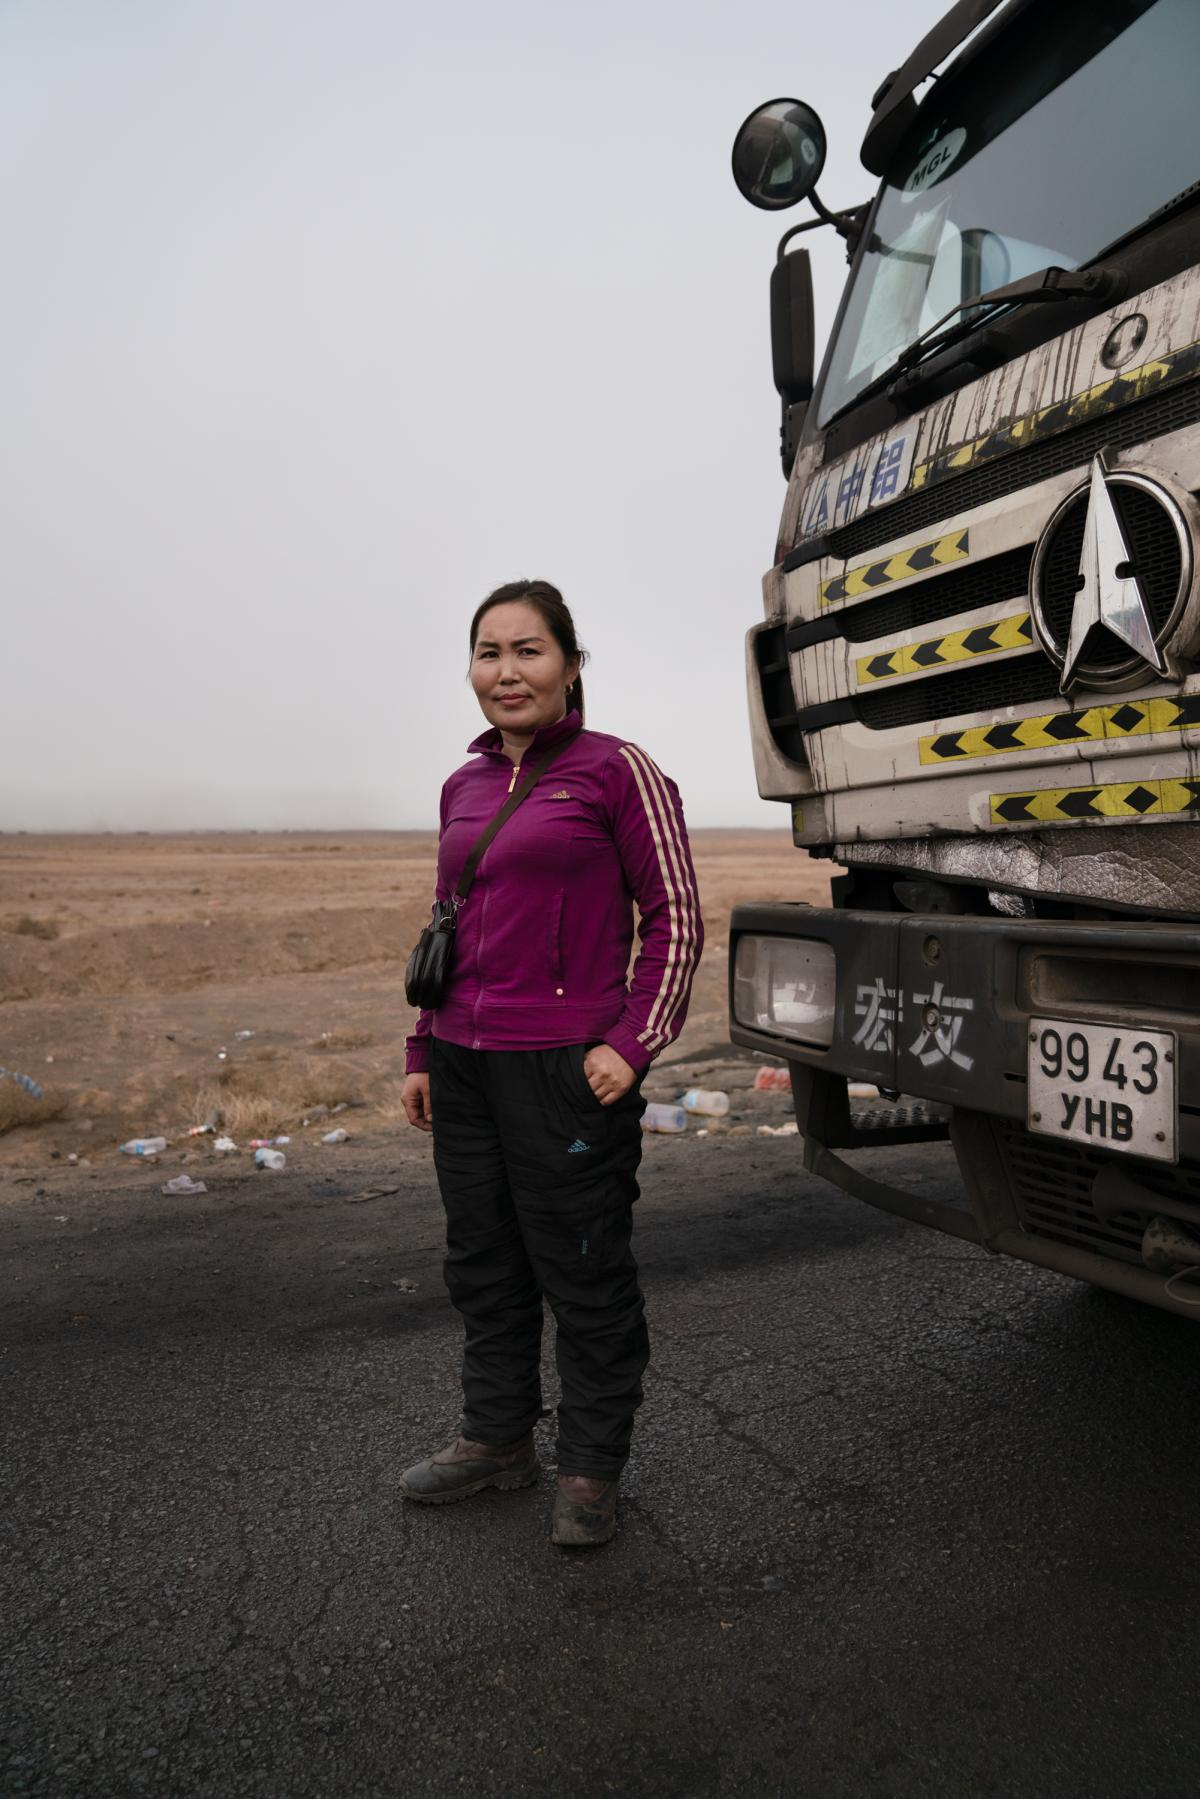 Gulnara Dariiga, 38, stands in front of her truck, a North Benz assigned to her by her Chinese employer. She performs a tea ritual in the morning, praying drivers stay safe on the road.